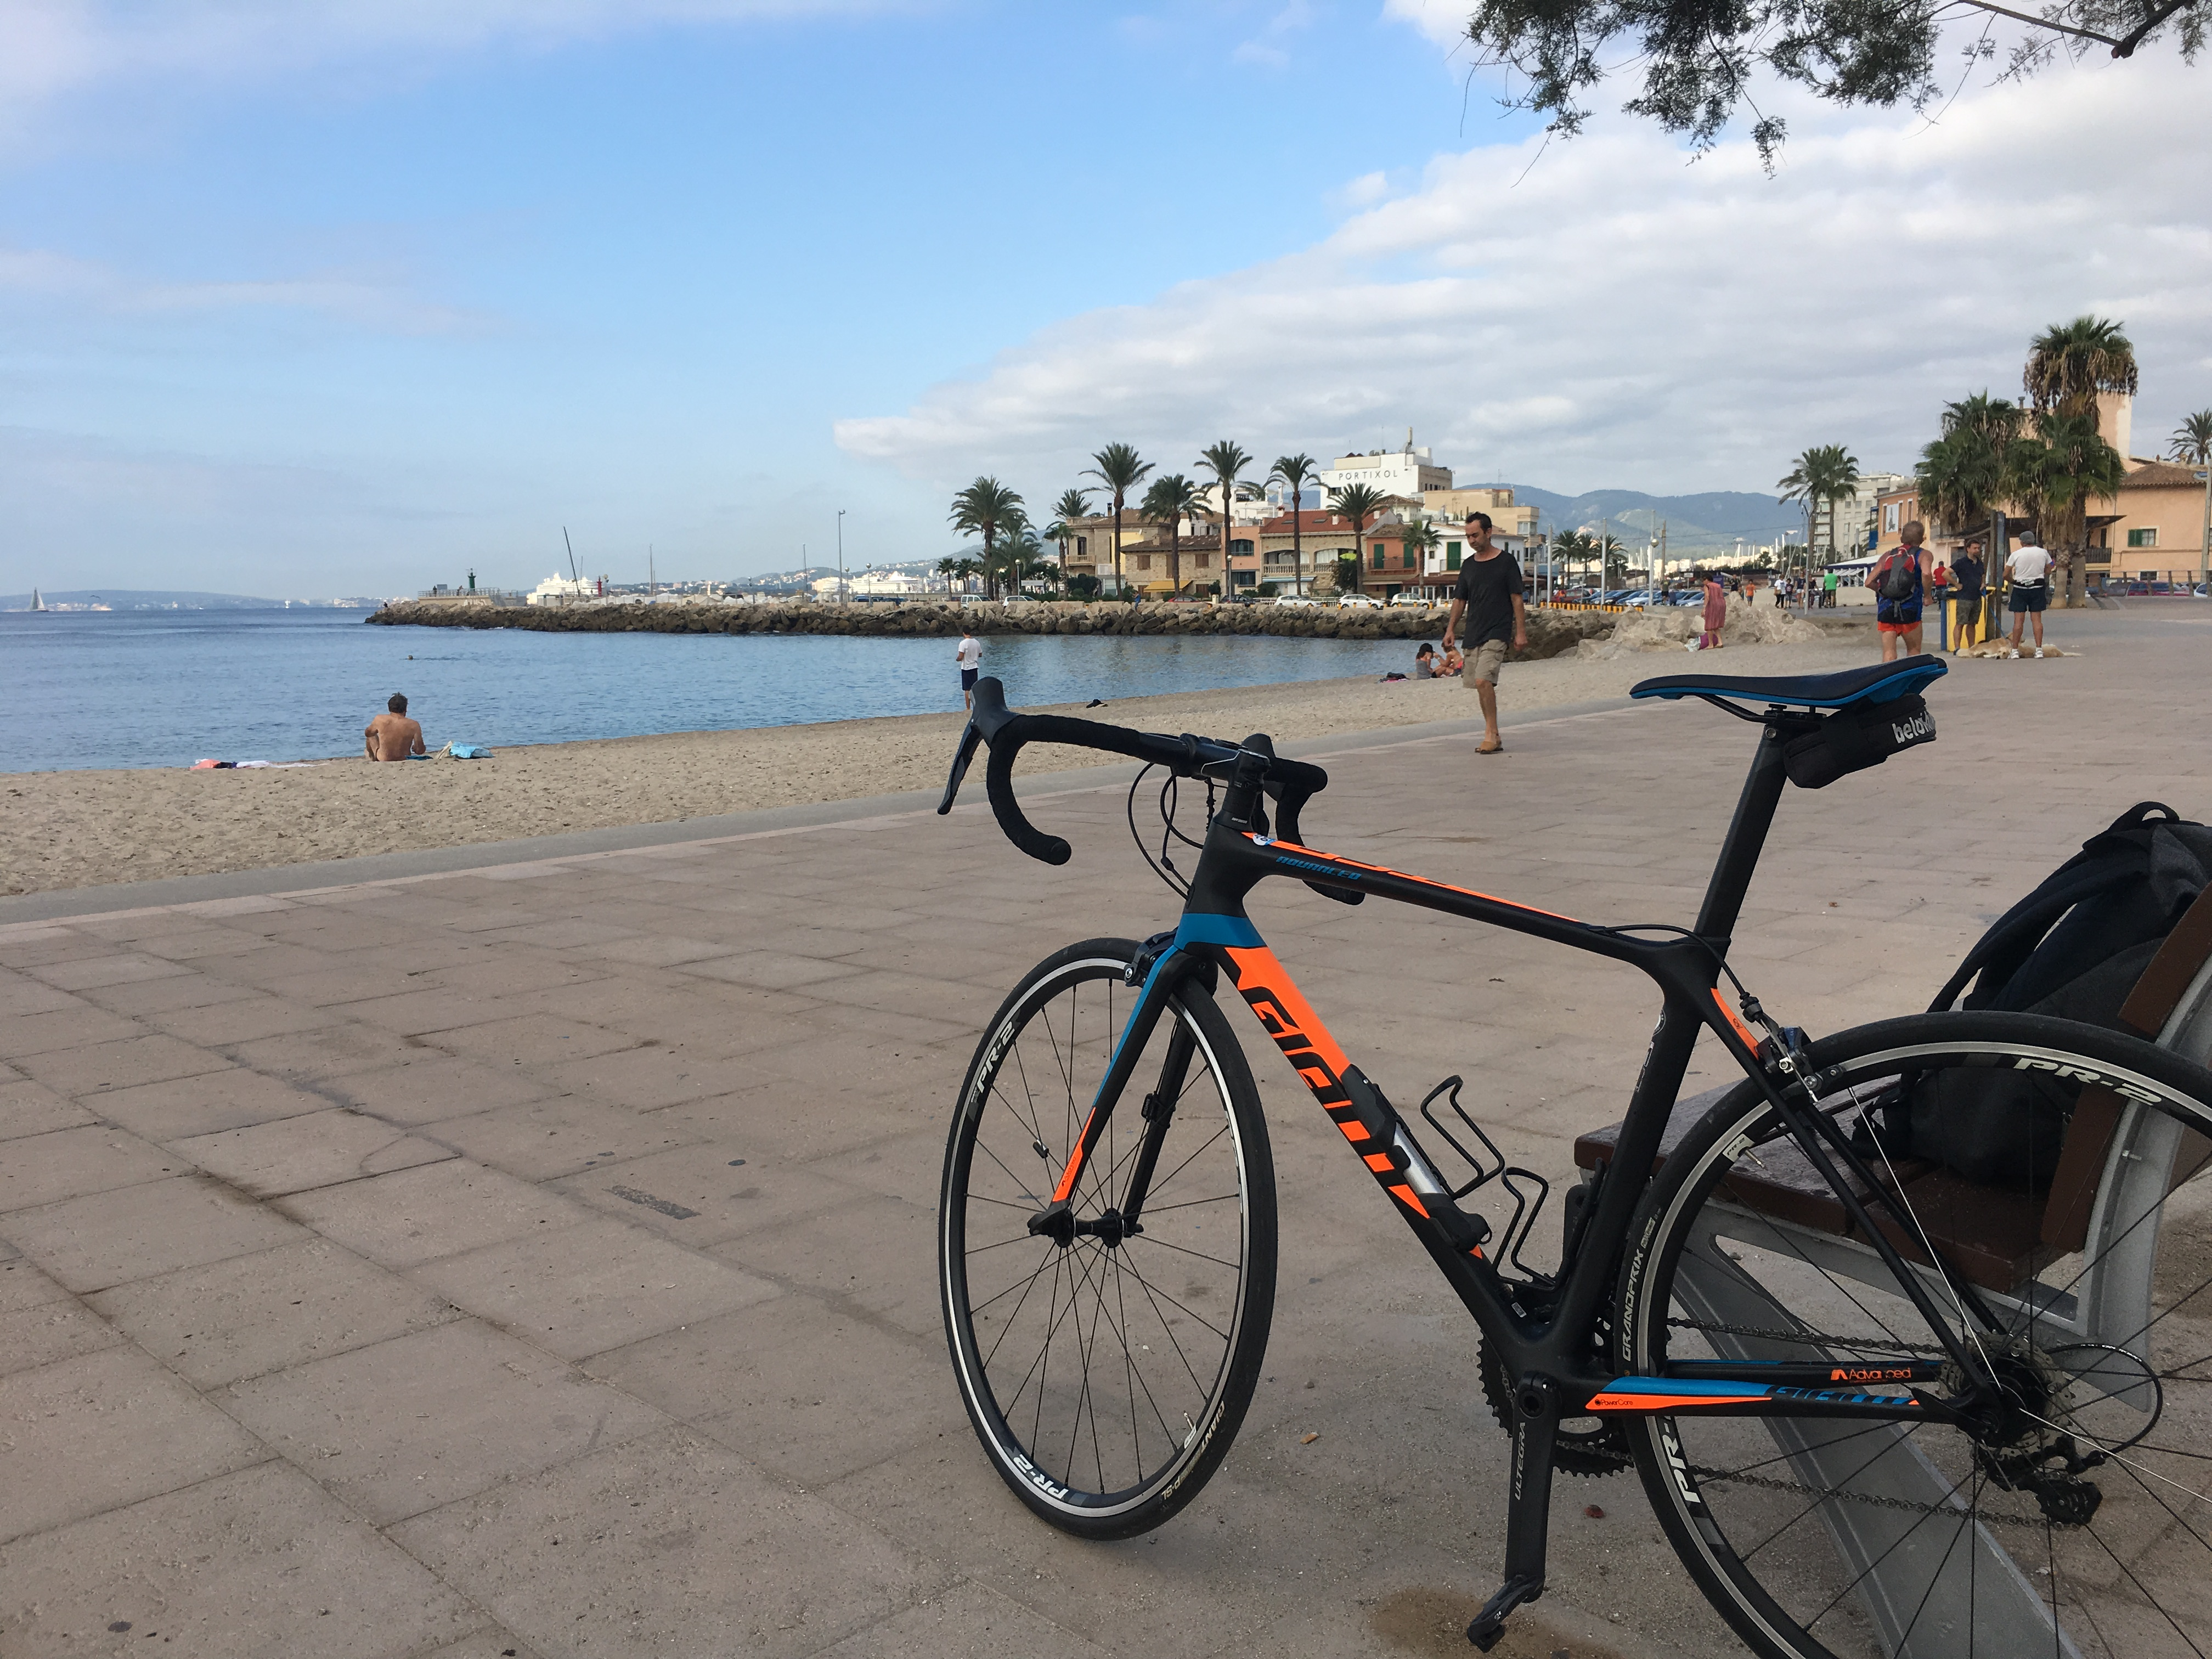 Big day out in Majorca – Palma to Sa Colabra via Soller and back